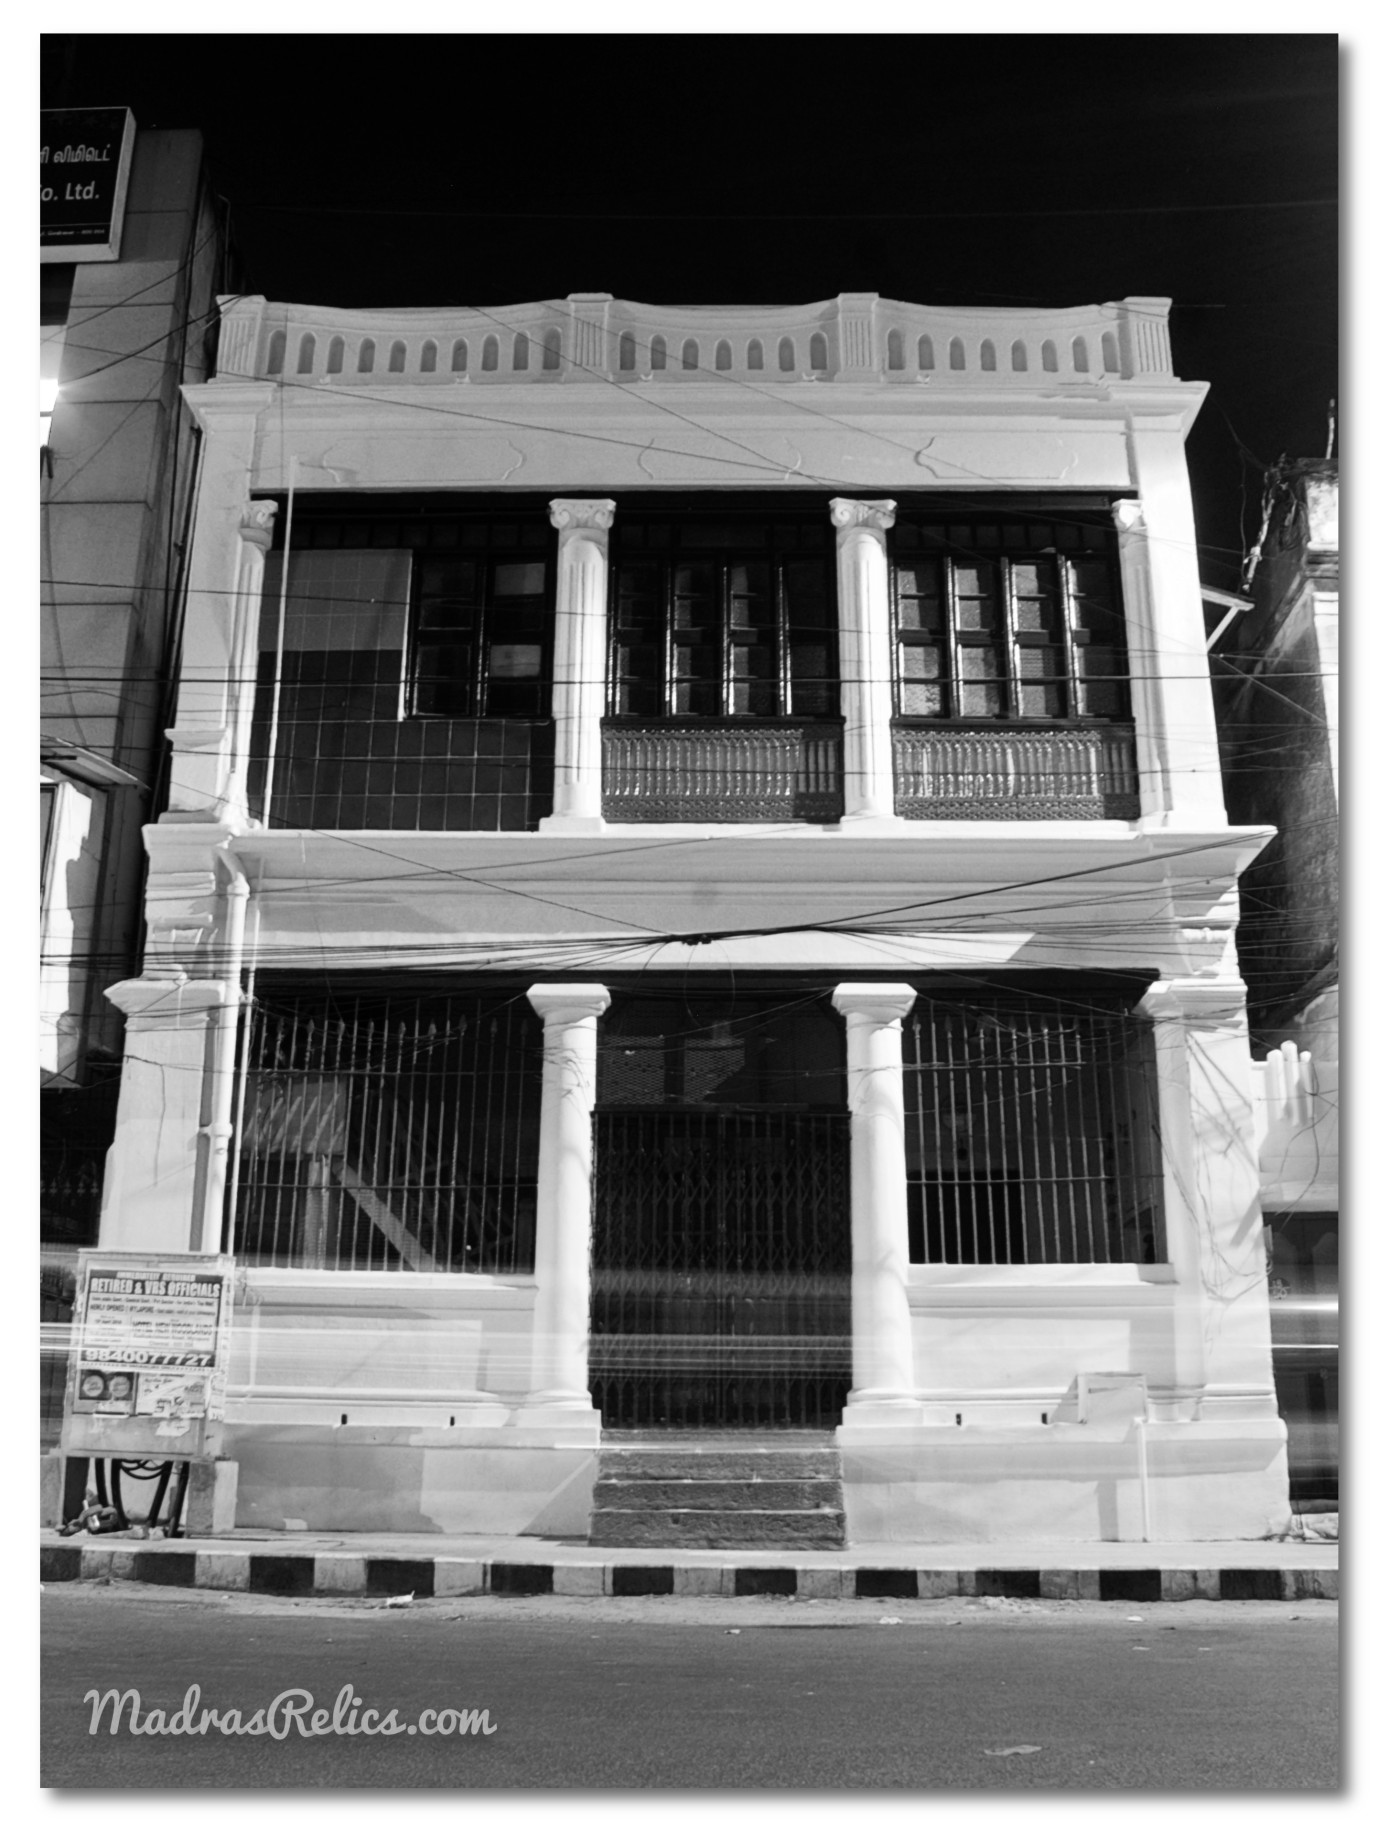 Houses of Mylapore